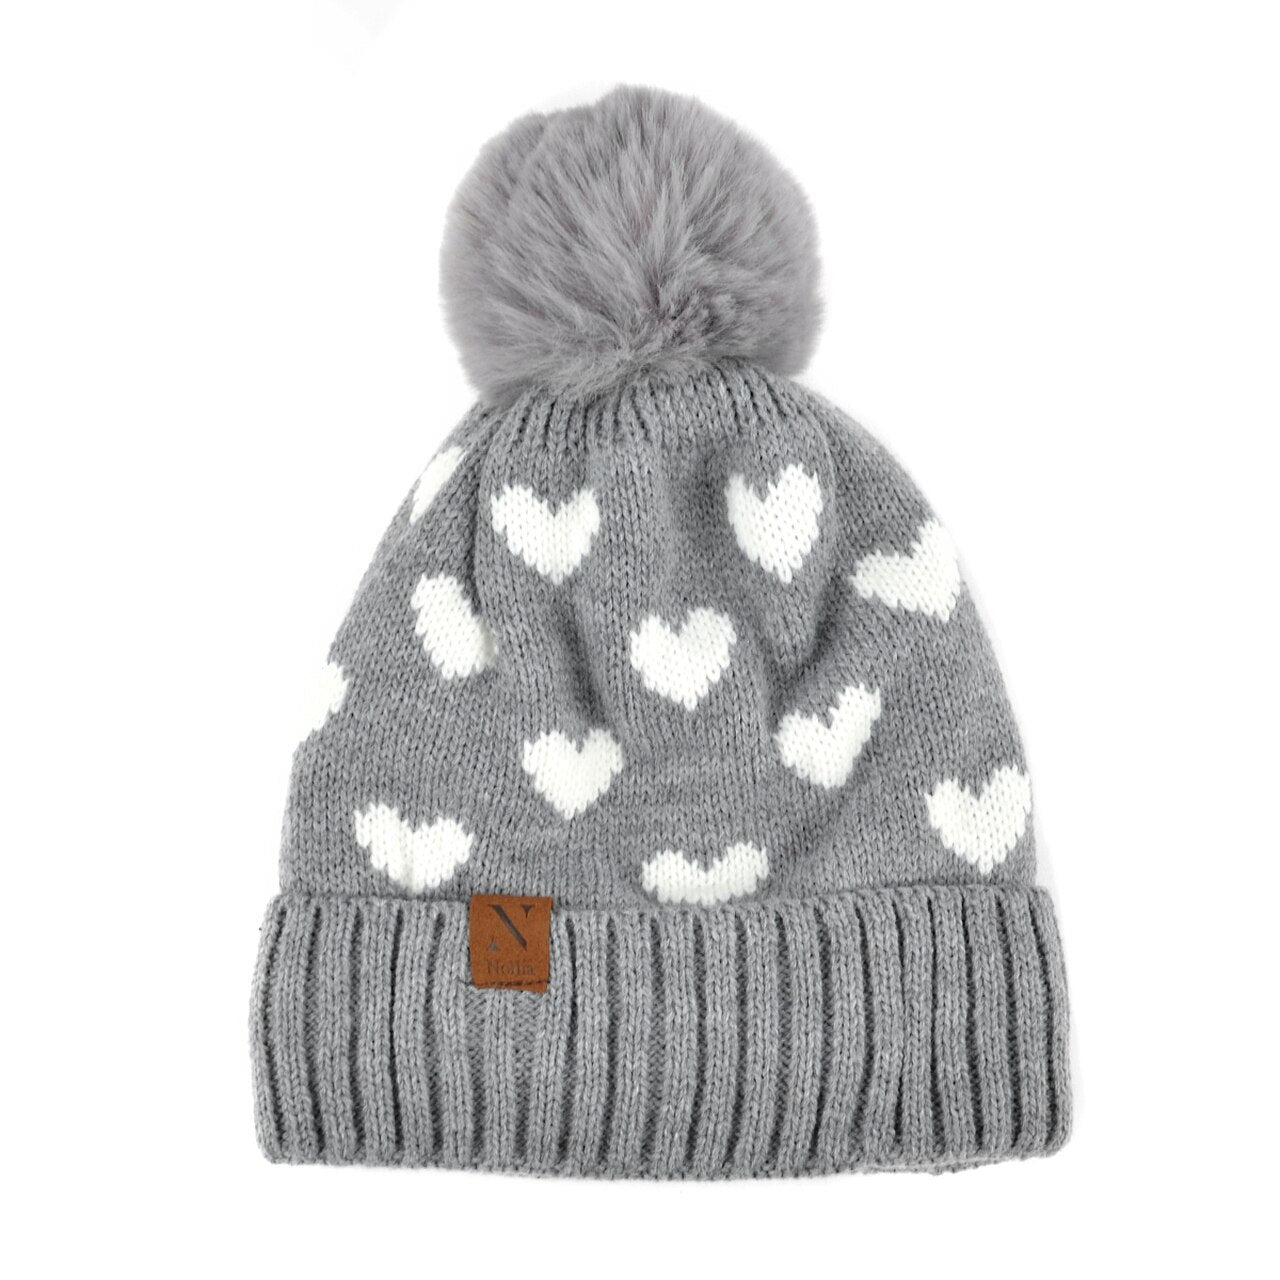 Hearts and Pom Pom Stocking hat